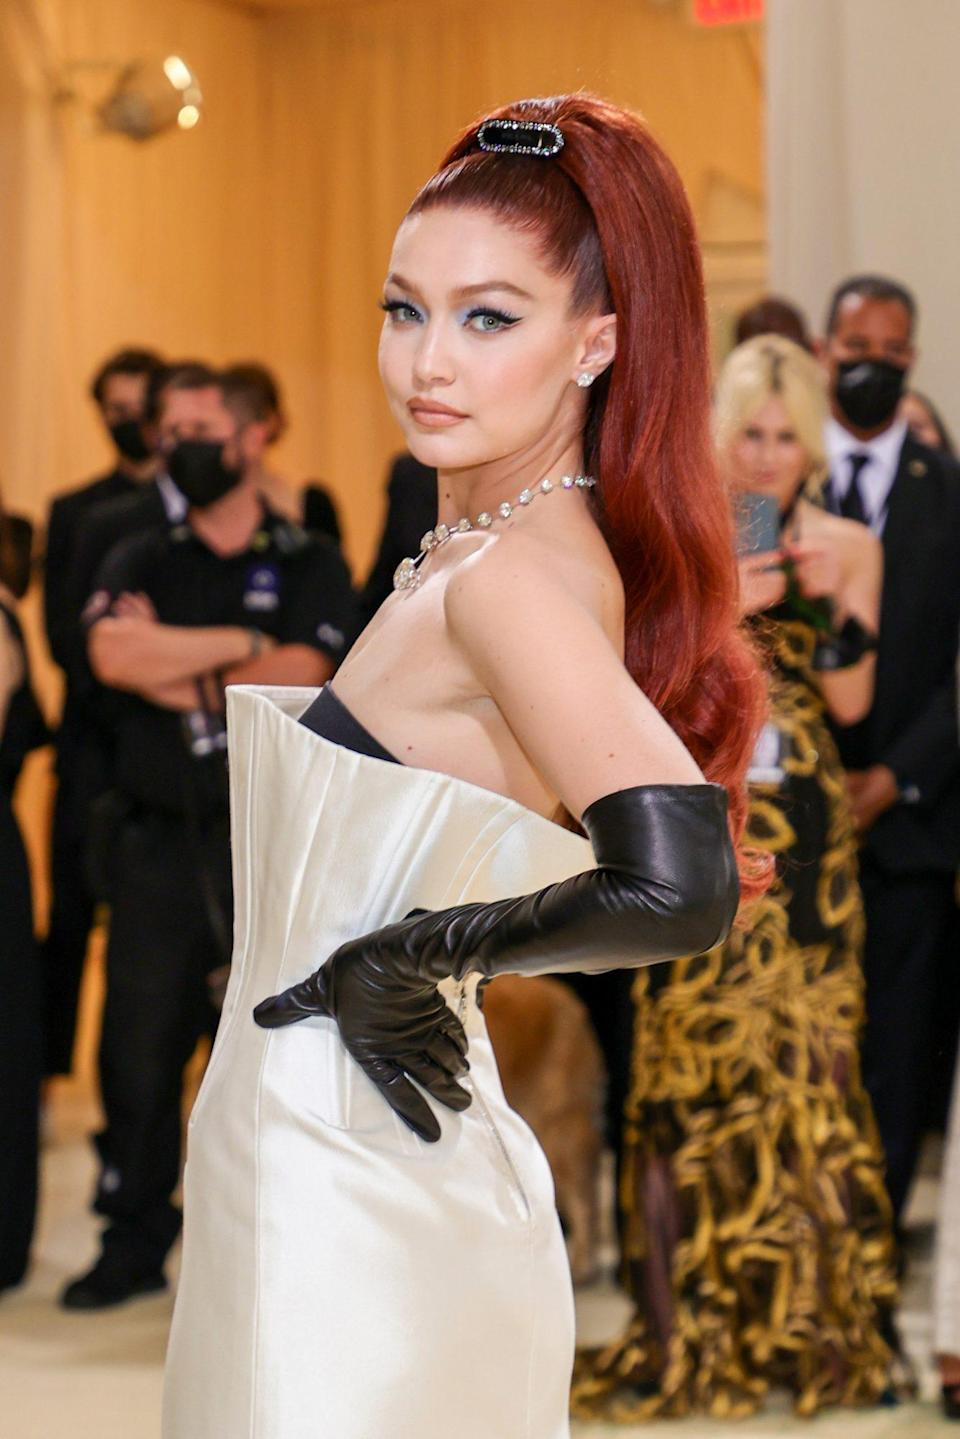 <p>As per usual, Gigi Hadid did not disappoint when it came to beauty. Much like others who were walking the red carpet at the 2021 Met Gala, Hadid stepped into Old Hollywood glam with an elaborate red ponytail and a sultry cat eye. </p>